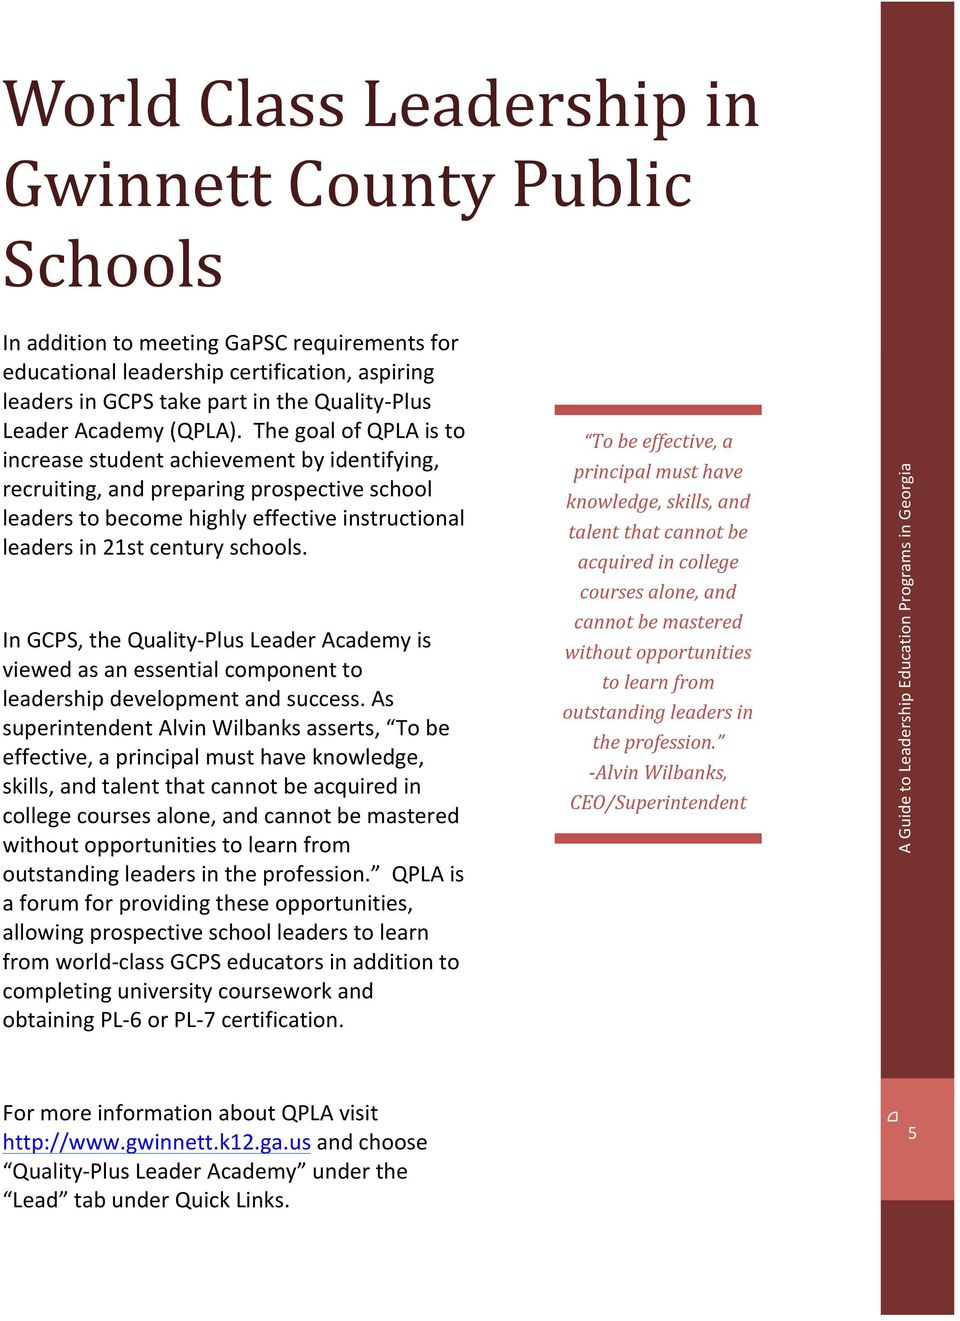 The goal of QPLA is to increase student achievement by identifying, recruiting, and preparing prospective school leaders to become highly effective instructional leaders in 21st century schools.